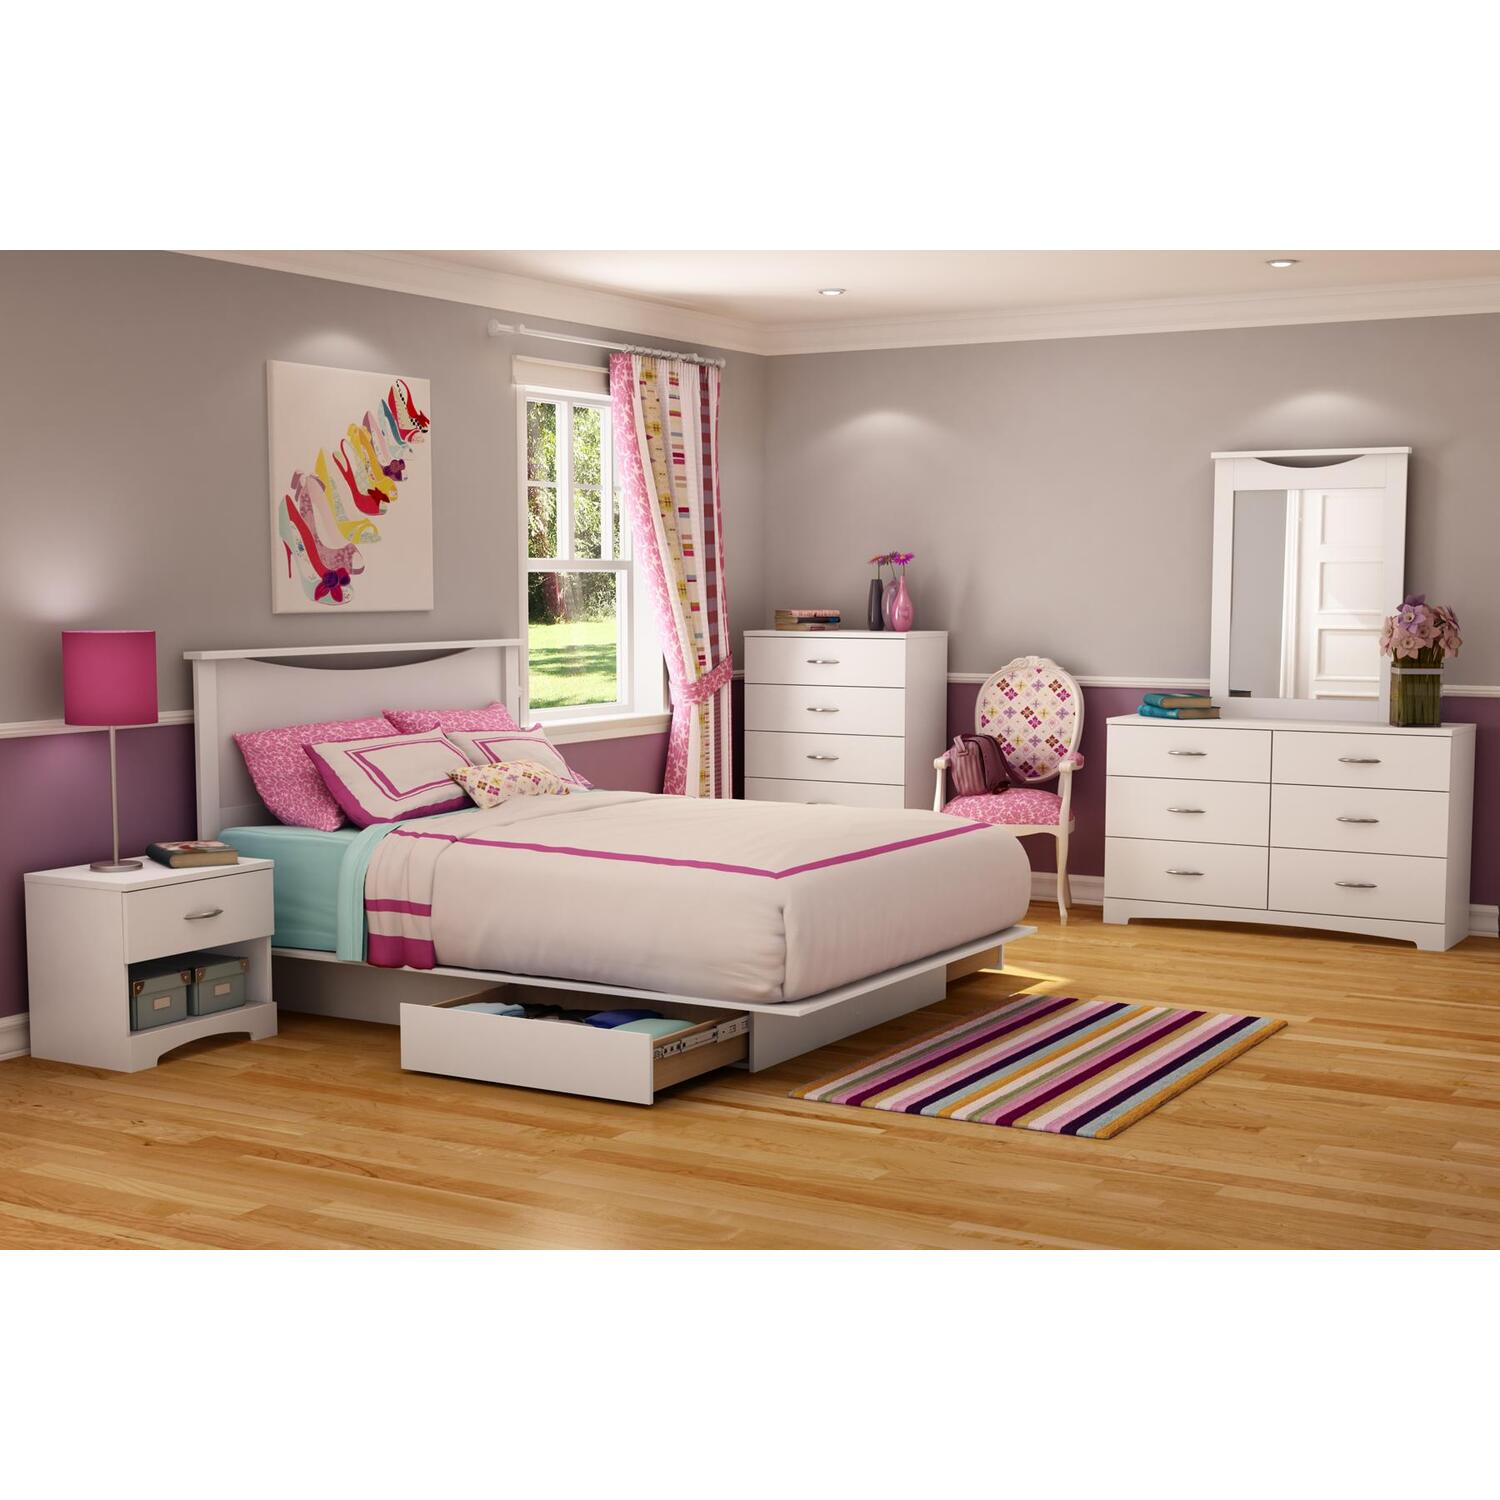 South Shore Step One Full/Queen 6 Piece Bedroom Set in Pure White by ...